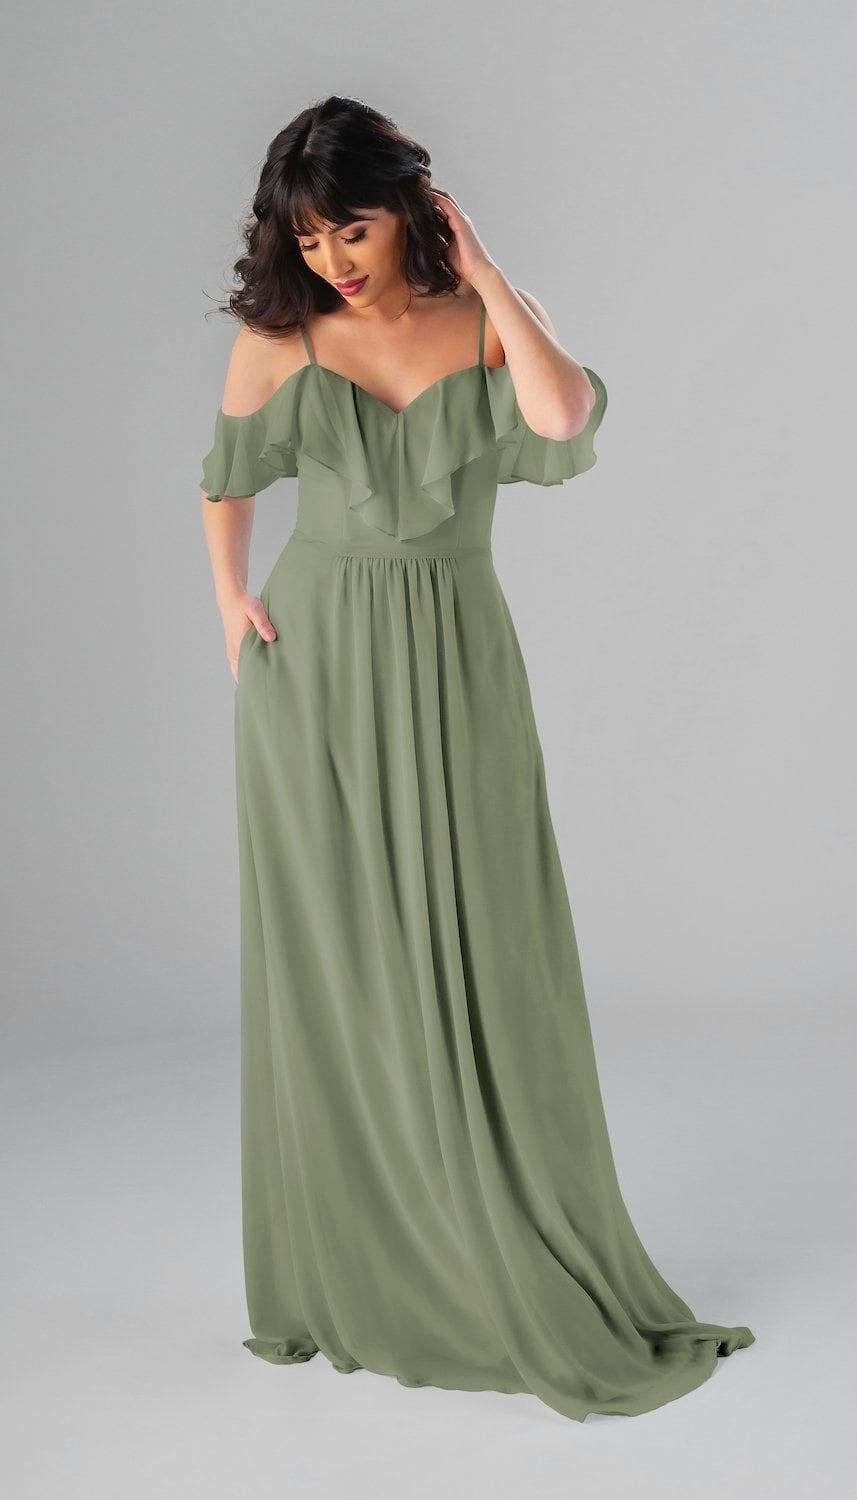 brunette model looking down posing in green bridesmaids dress with ruffles